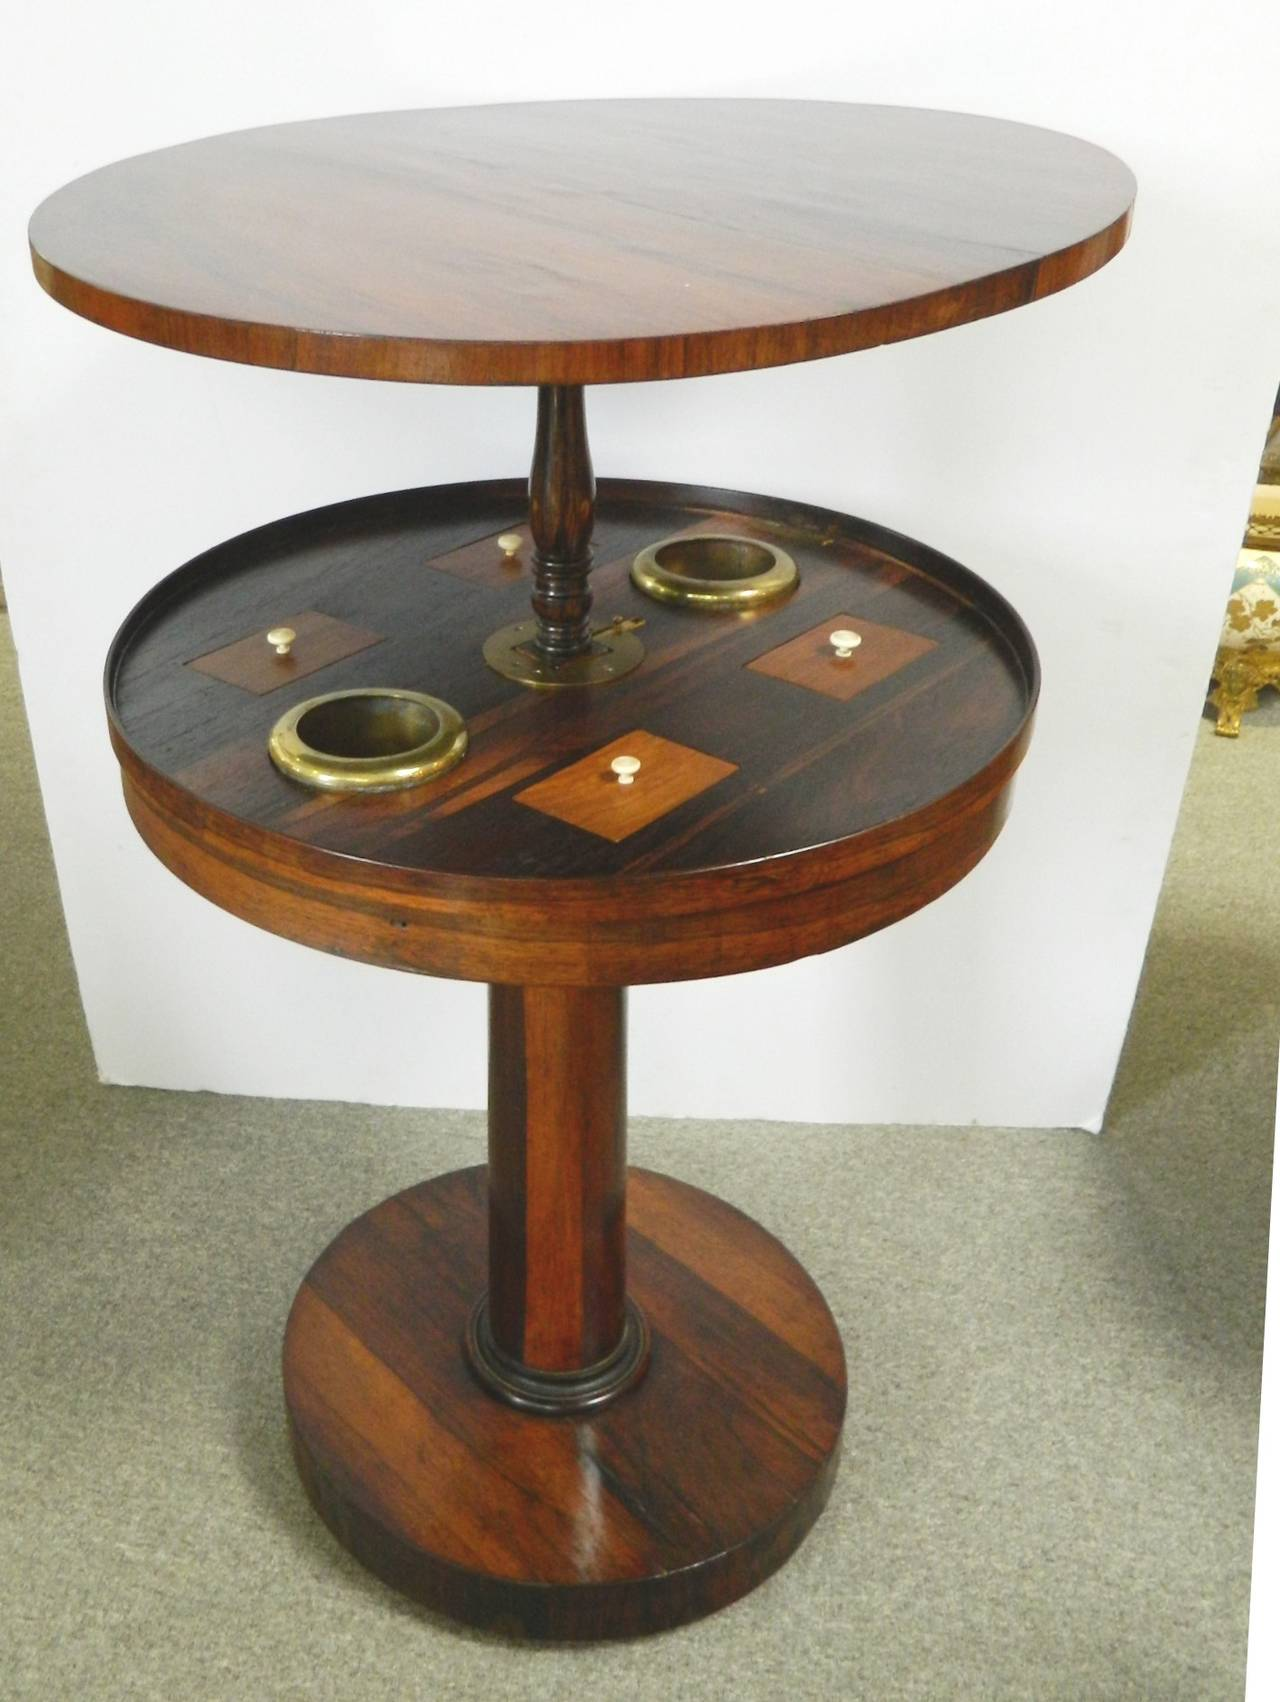 Rosewood smoking table english for sale at 1stdibs for England table